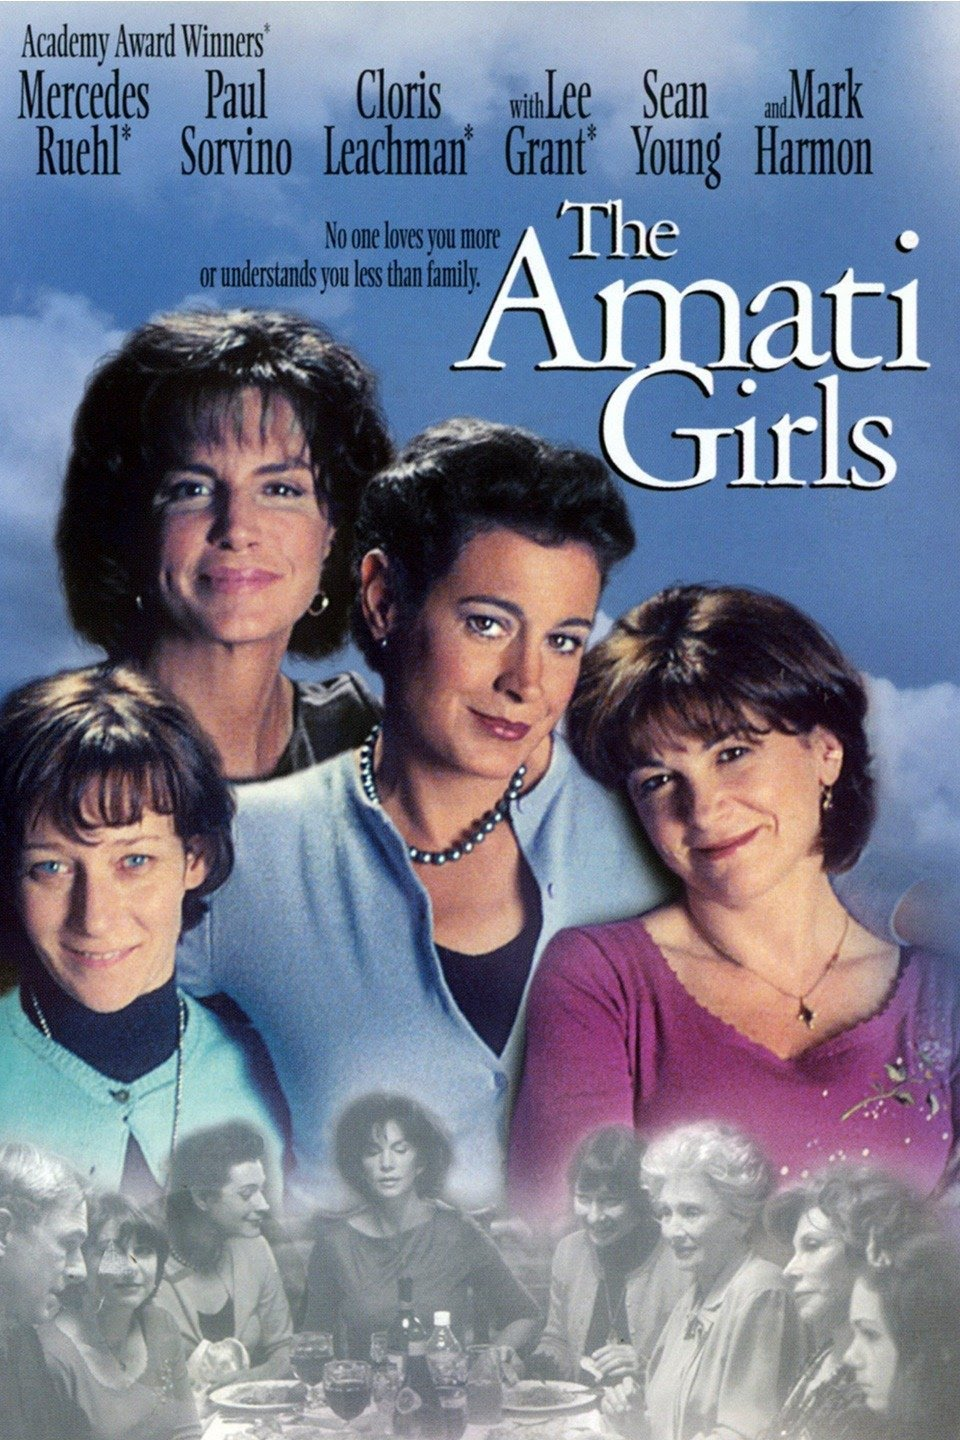 The Amati Girls (2001)